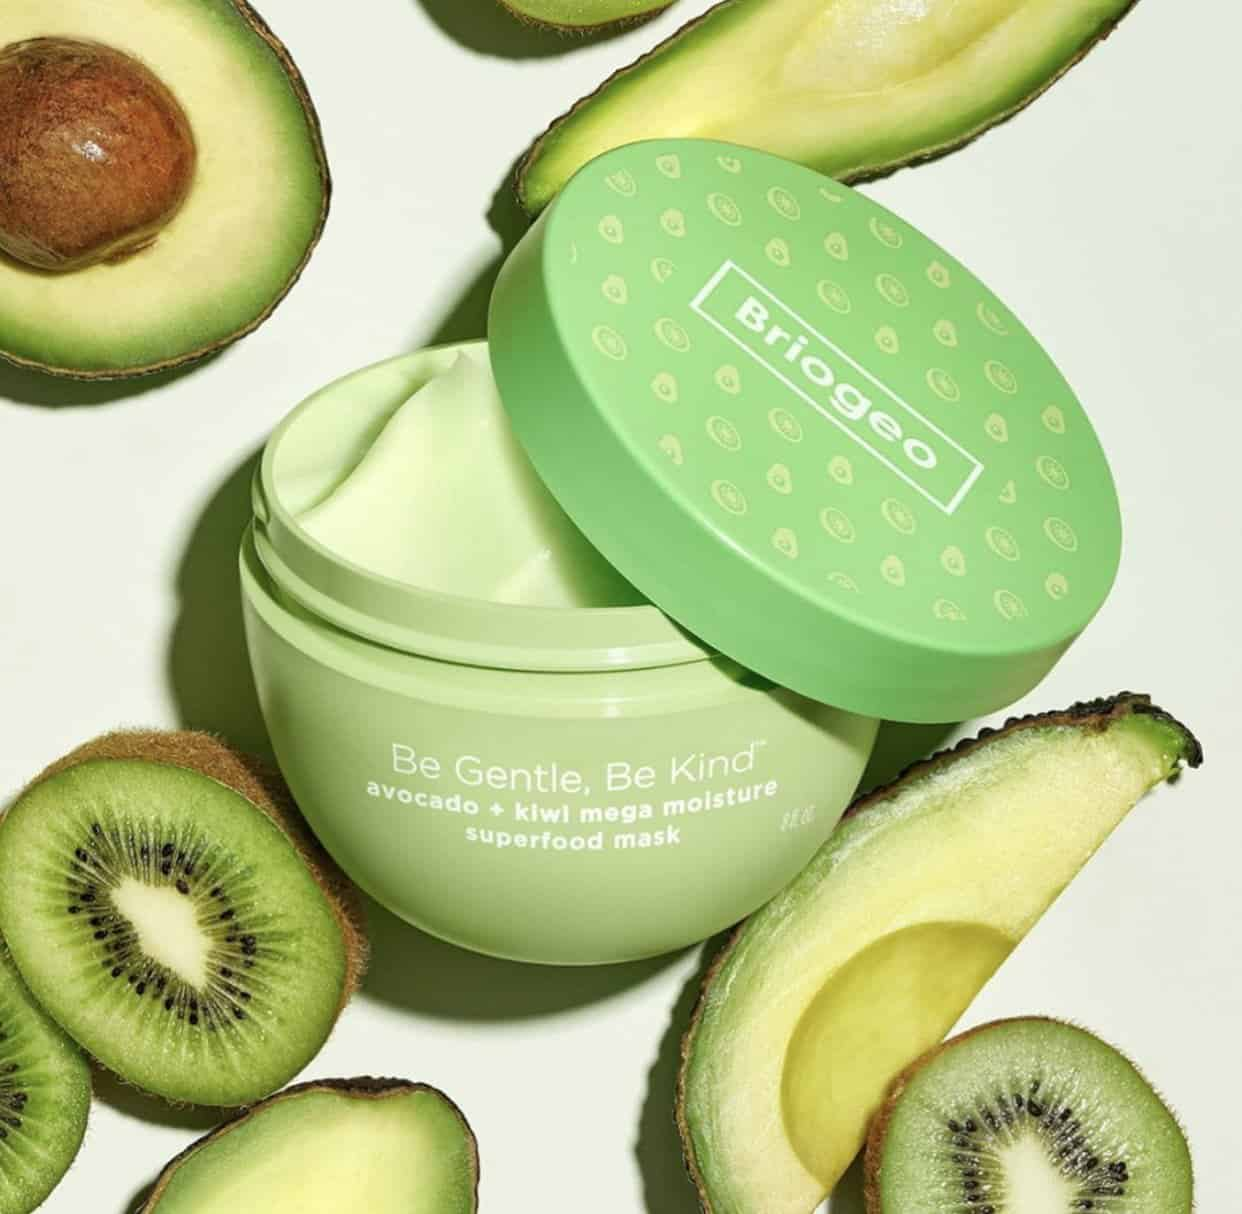 Briogeo Be Gentle Be Kind Avocado and Kiwi Superfood Mask